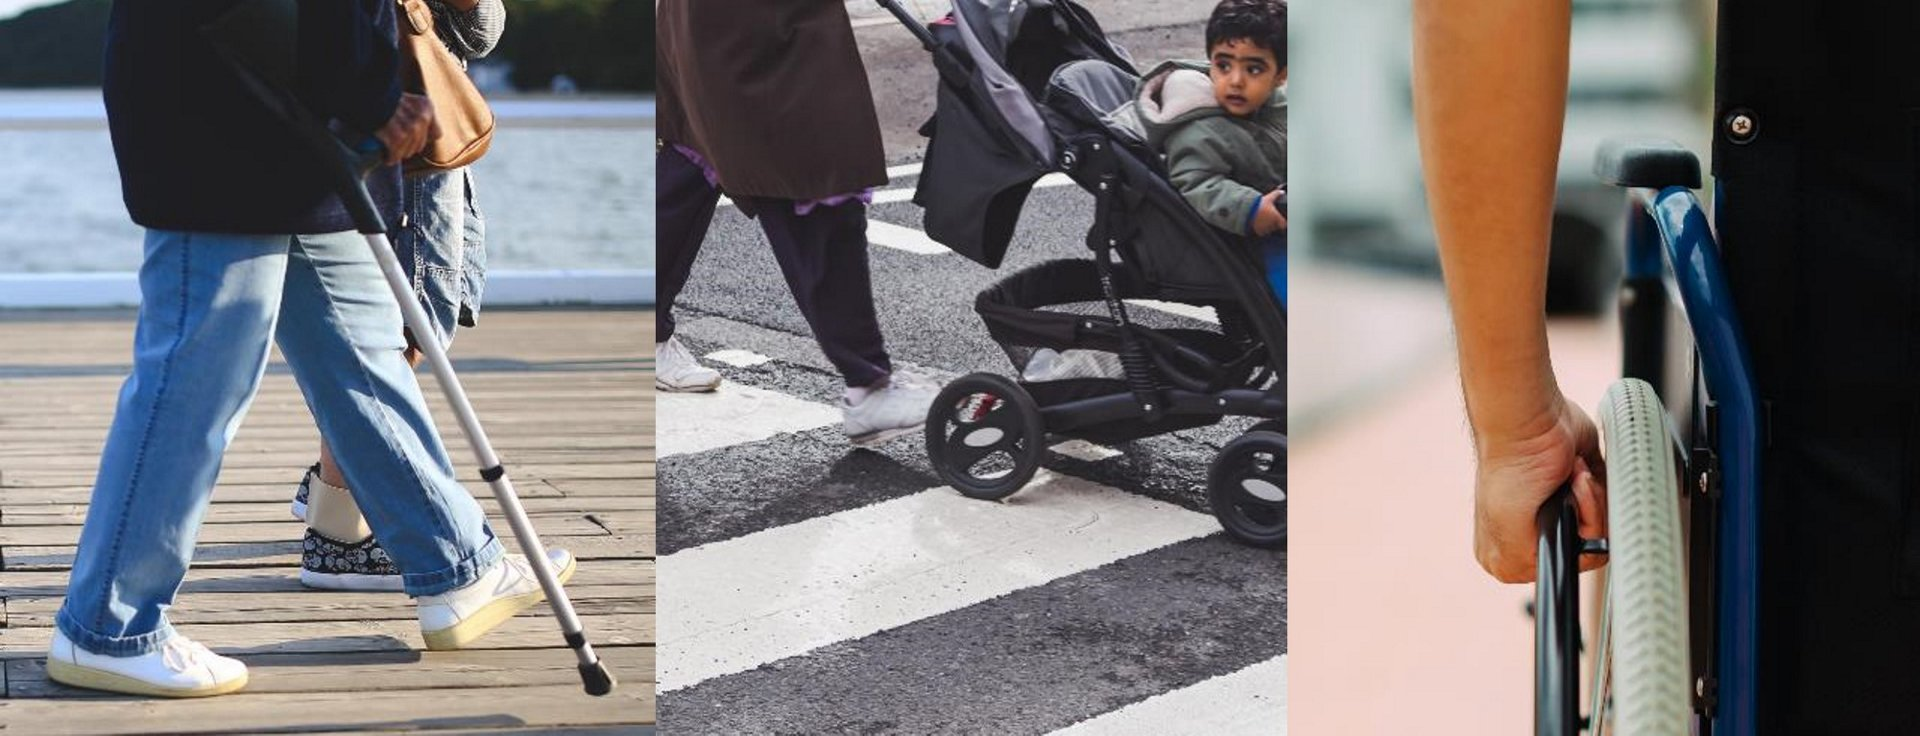 """""""At any one time 40% of us experience some restriction in our mobility – be it through injury, as a wheelchair user or simply a parent with a pushchair,"""" says Adrien Muller from DYbyDX."""